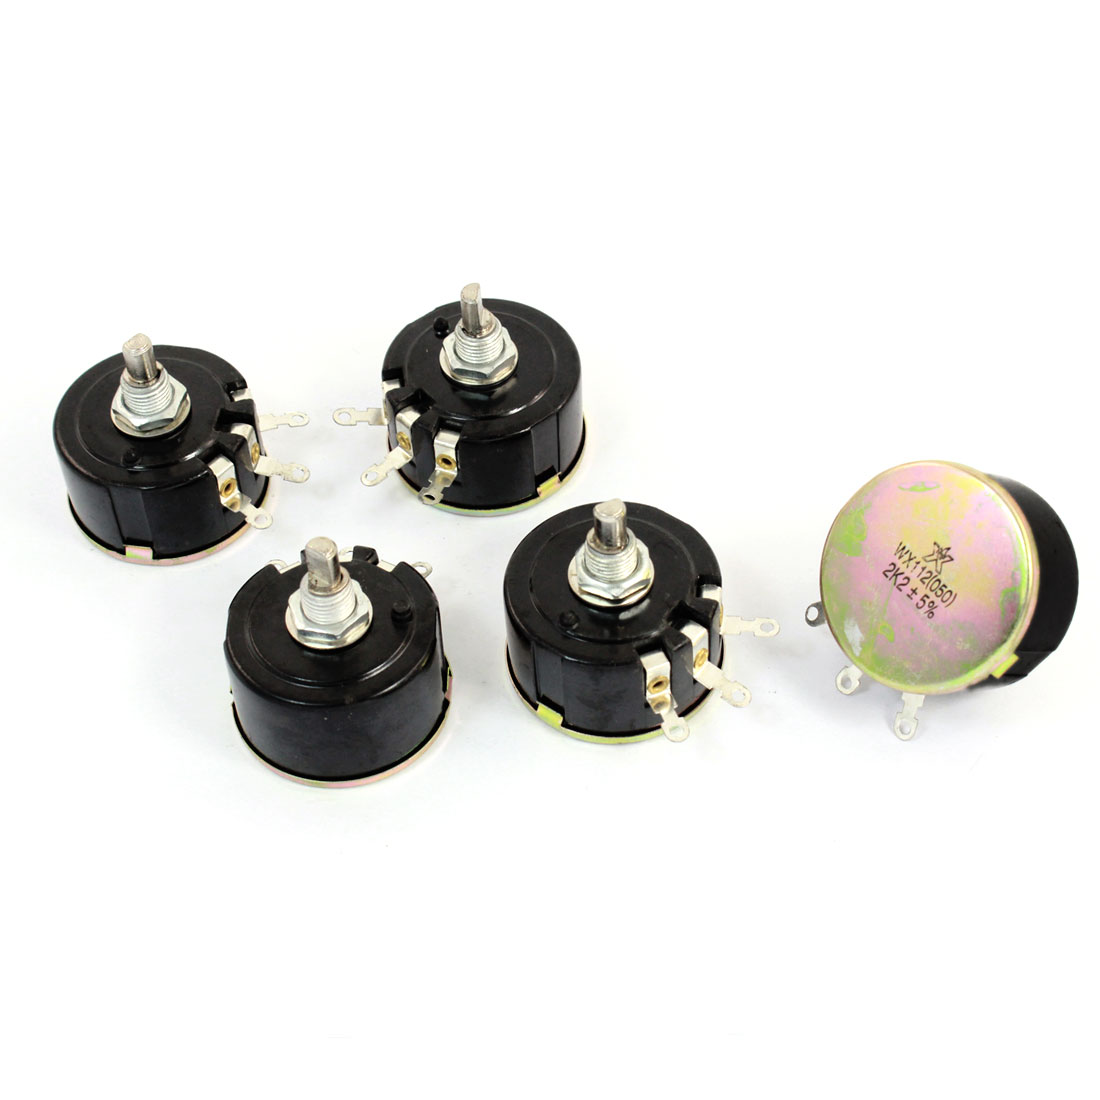 5W 2.2K Ohm Variable Resistor 3 Pin Wire Wound Potentiometer WX112(050) 5pcs